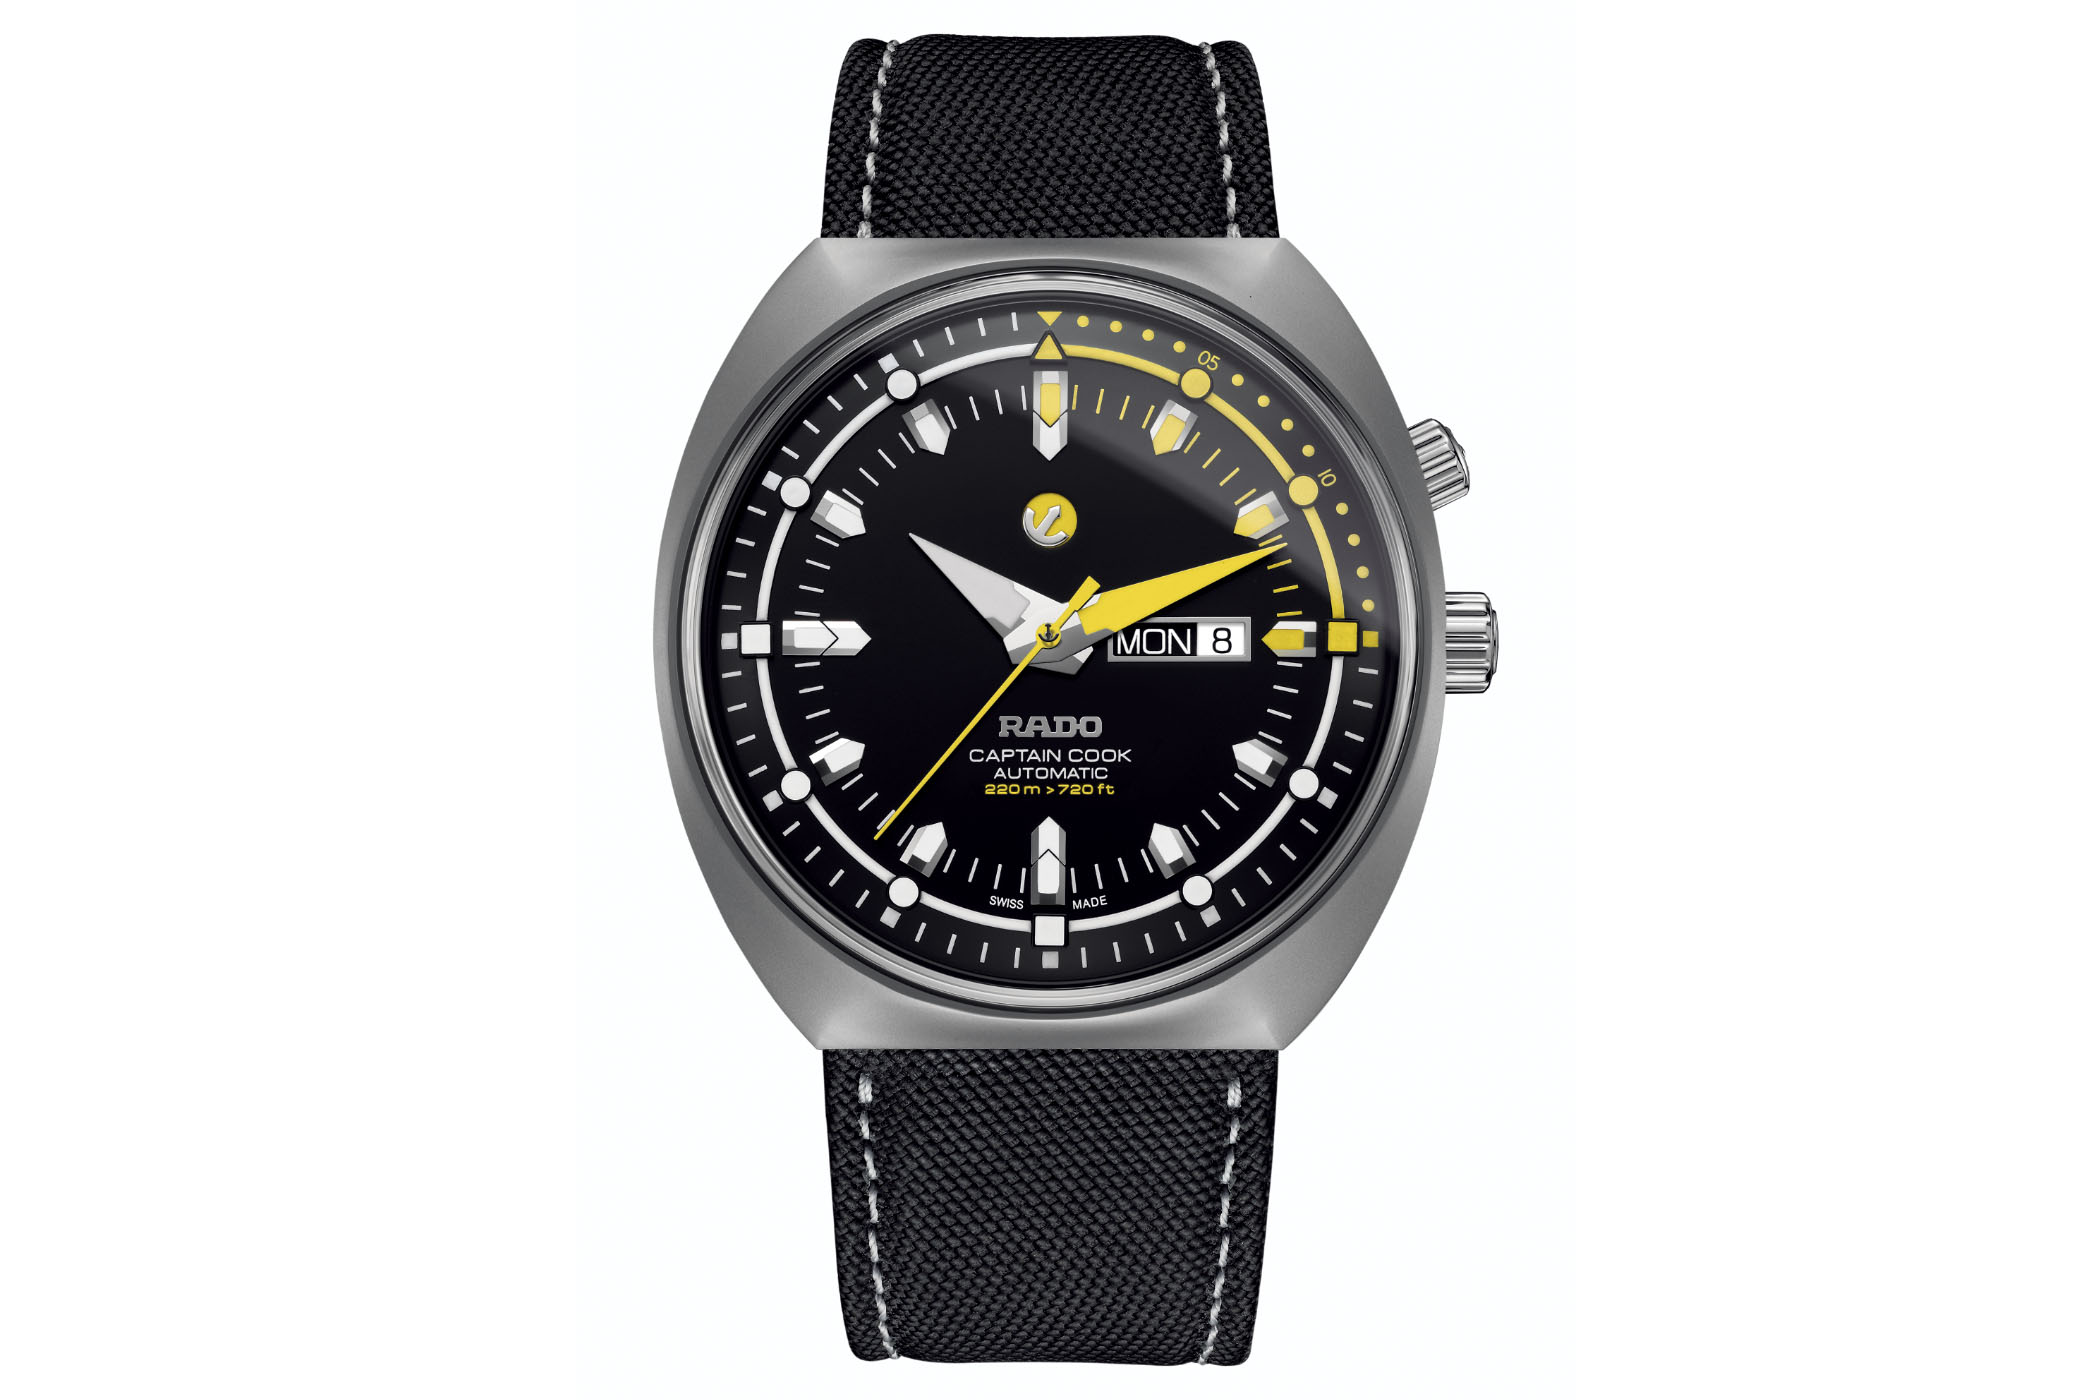 86bae6febea Introducing - Rado Tradition Captain Cook MKIII Automatic (Specs ...